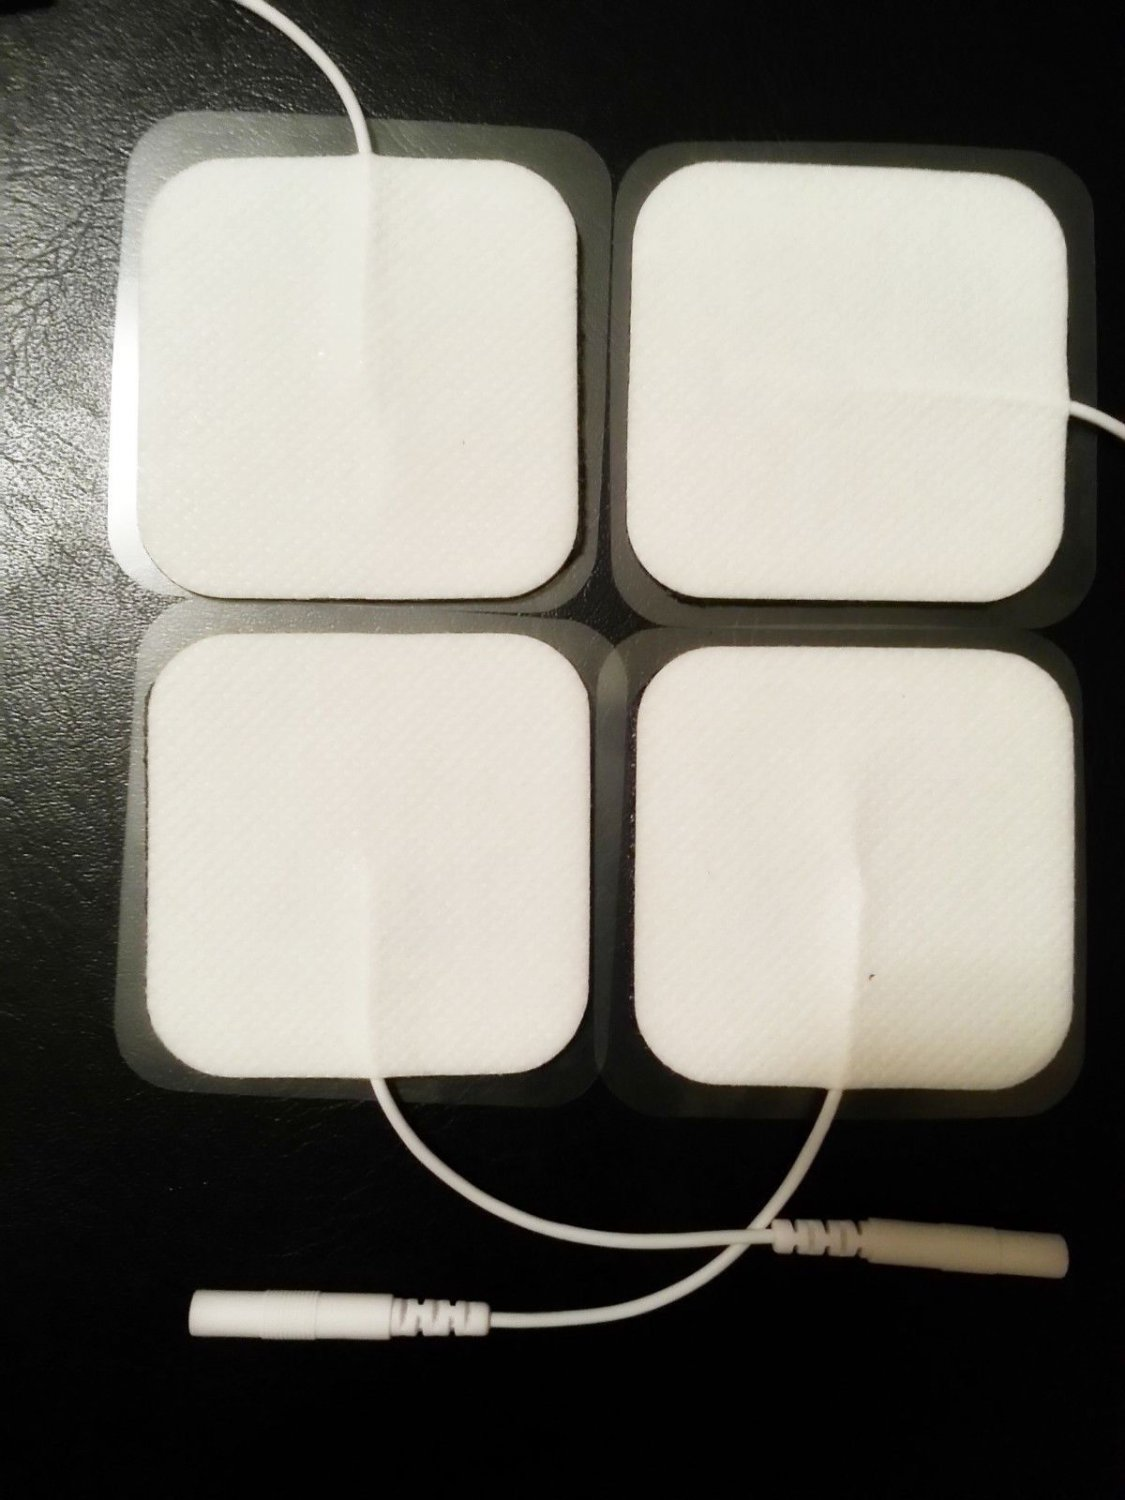 8 Pc Square Electrode Massage Wired Pads for EMSI-2000 2001 2500 5000 Massagers